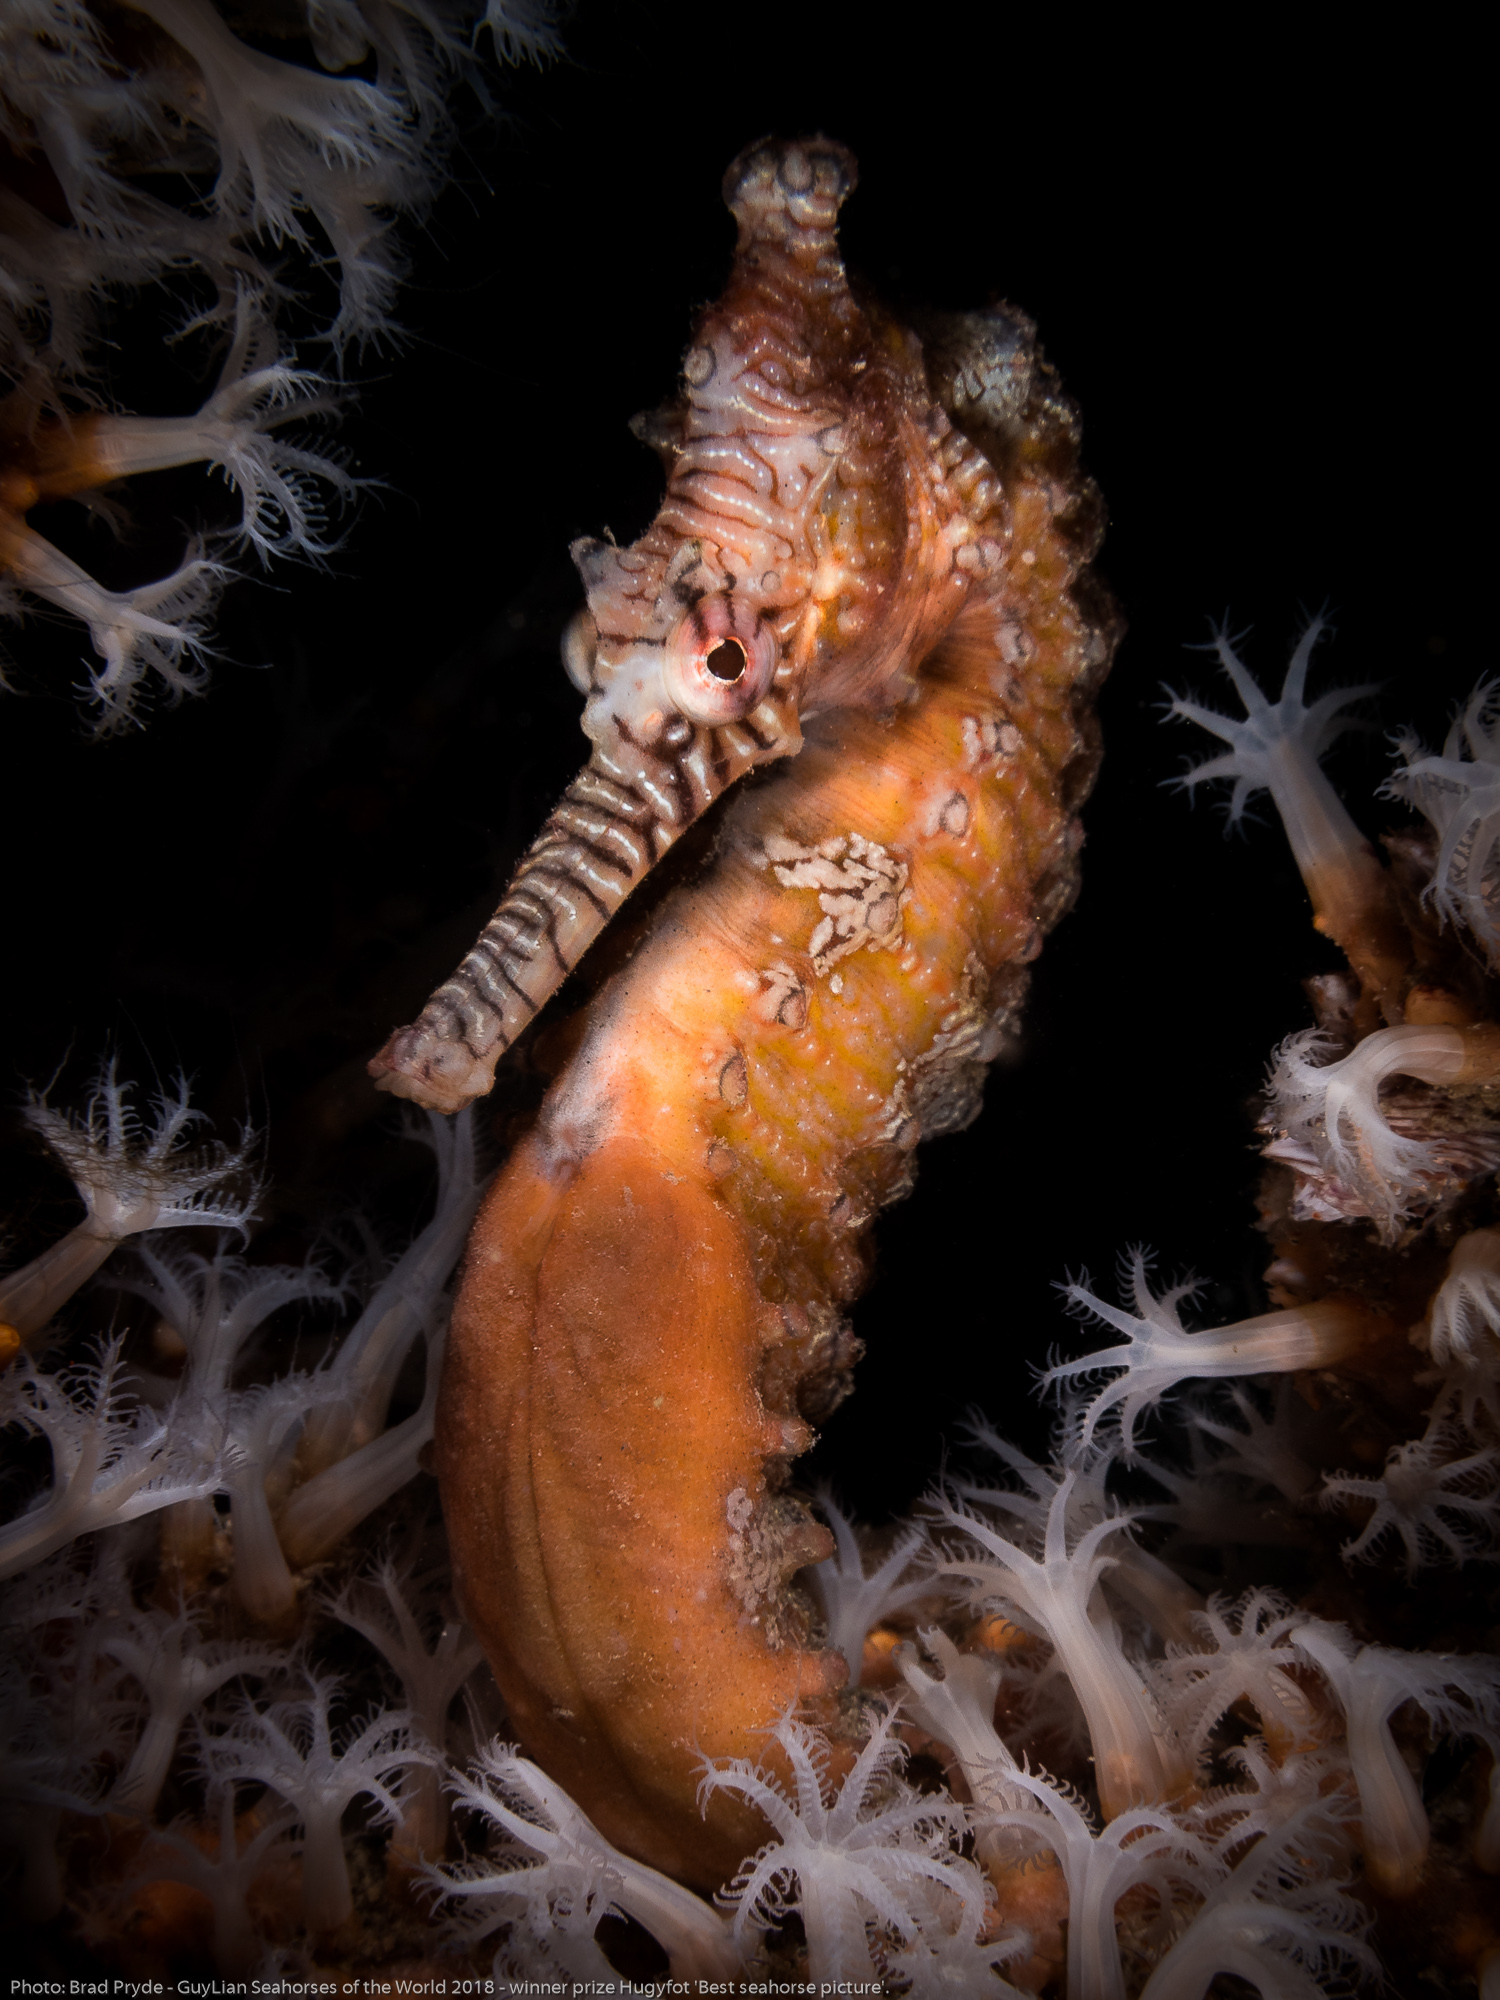 """Winner of the Hugyfot Prize: """"Field of Dreams"""" West Australian seahorse ( Hippocampus subelongatus)  in   Perth, Western Australia. Photo by Brad Pryde/Guylian Seahorses of the World."""